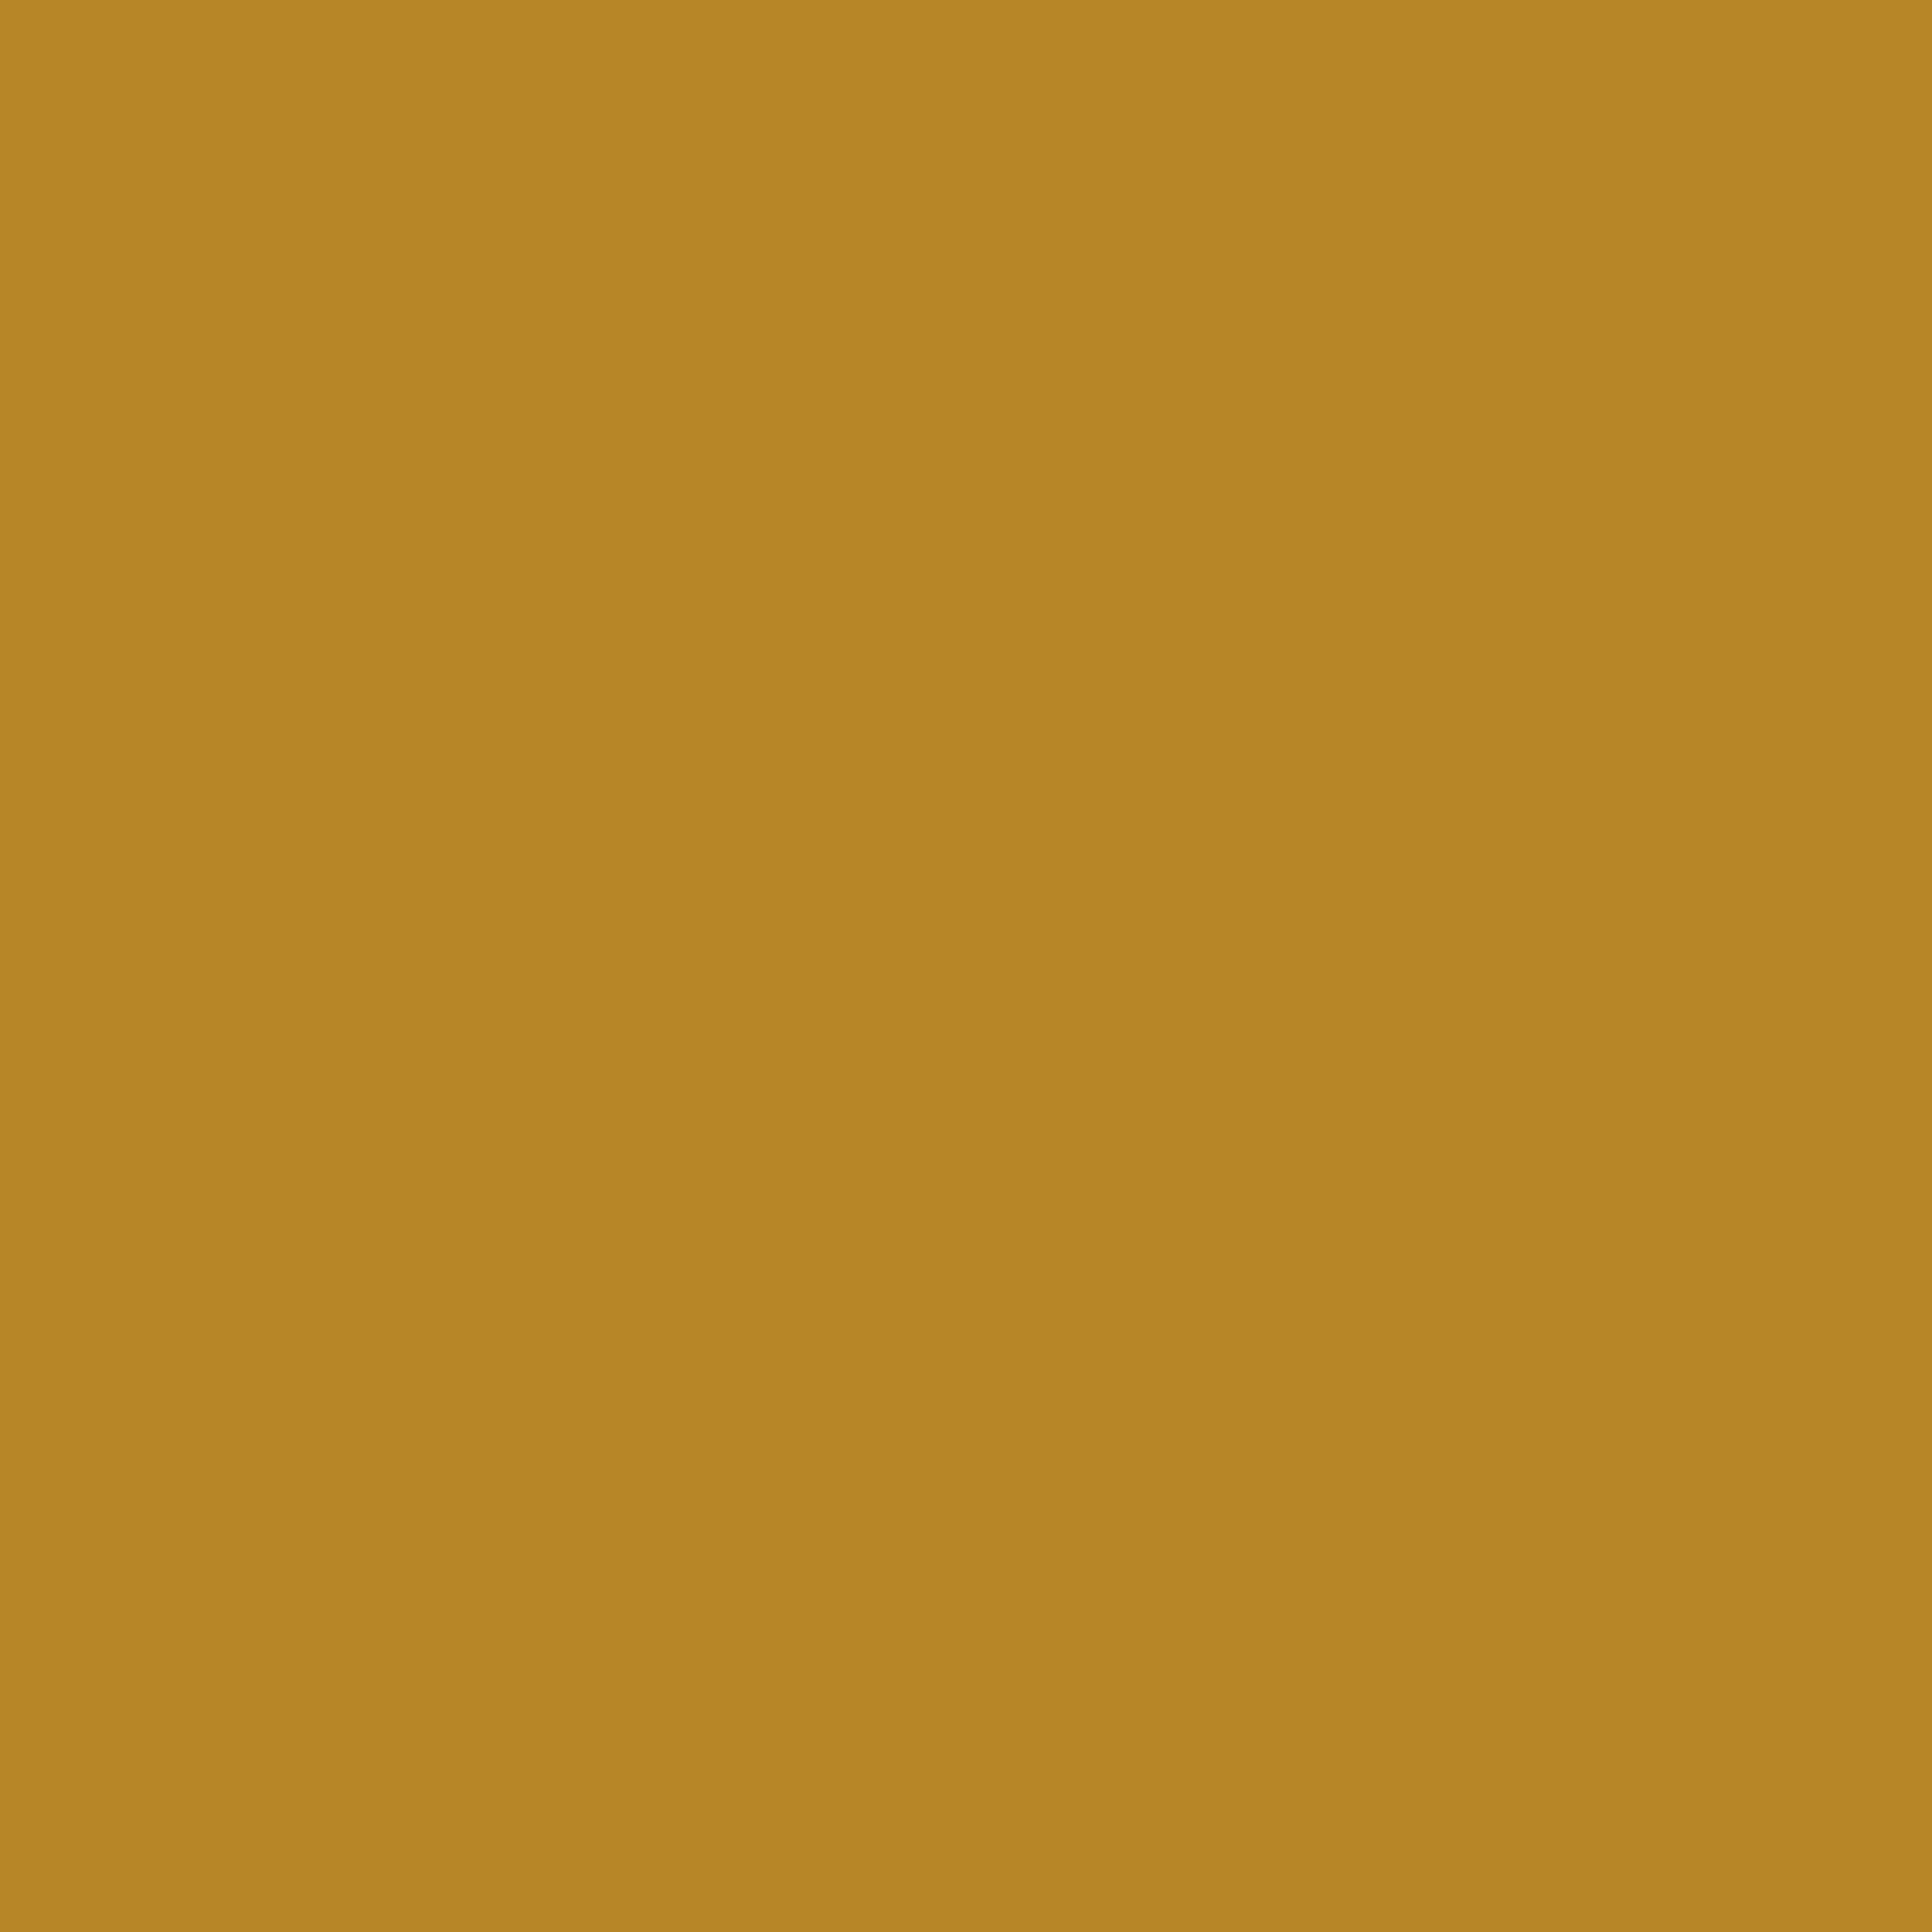 3600x3600 University Of California Gold Solid Color Background